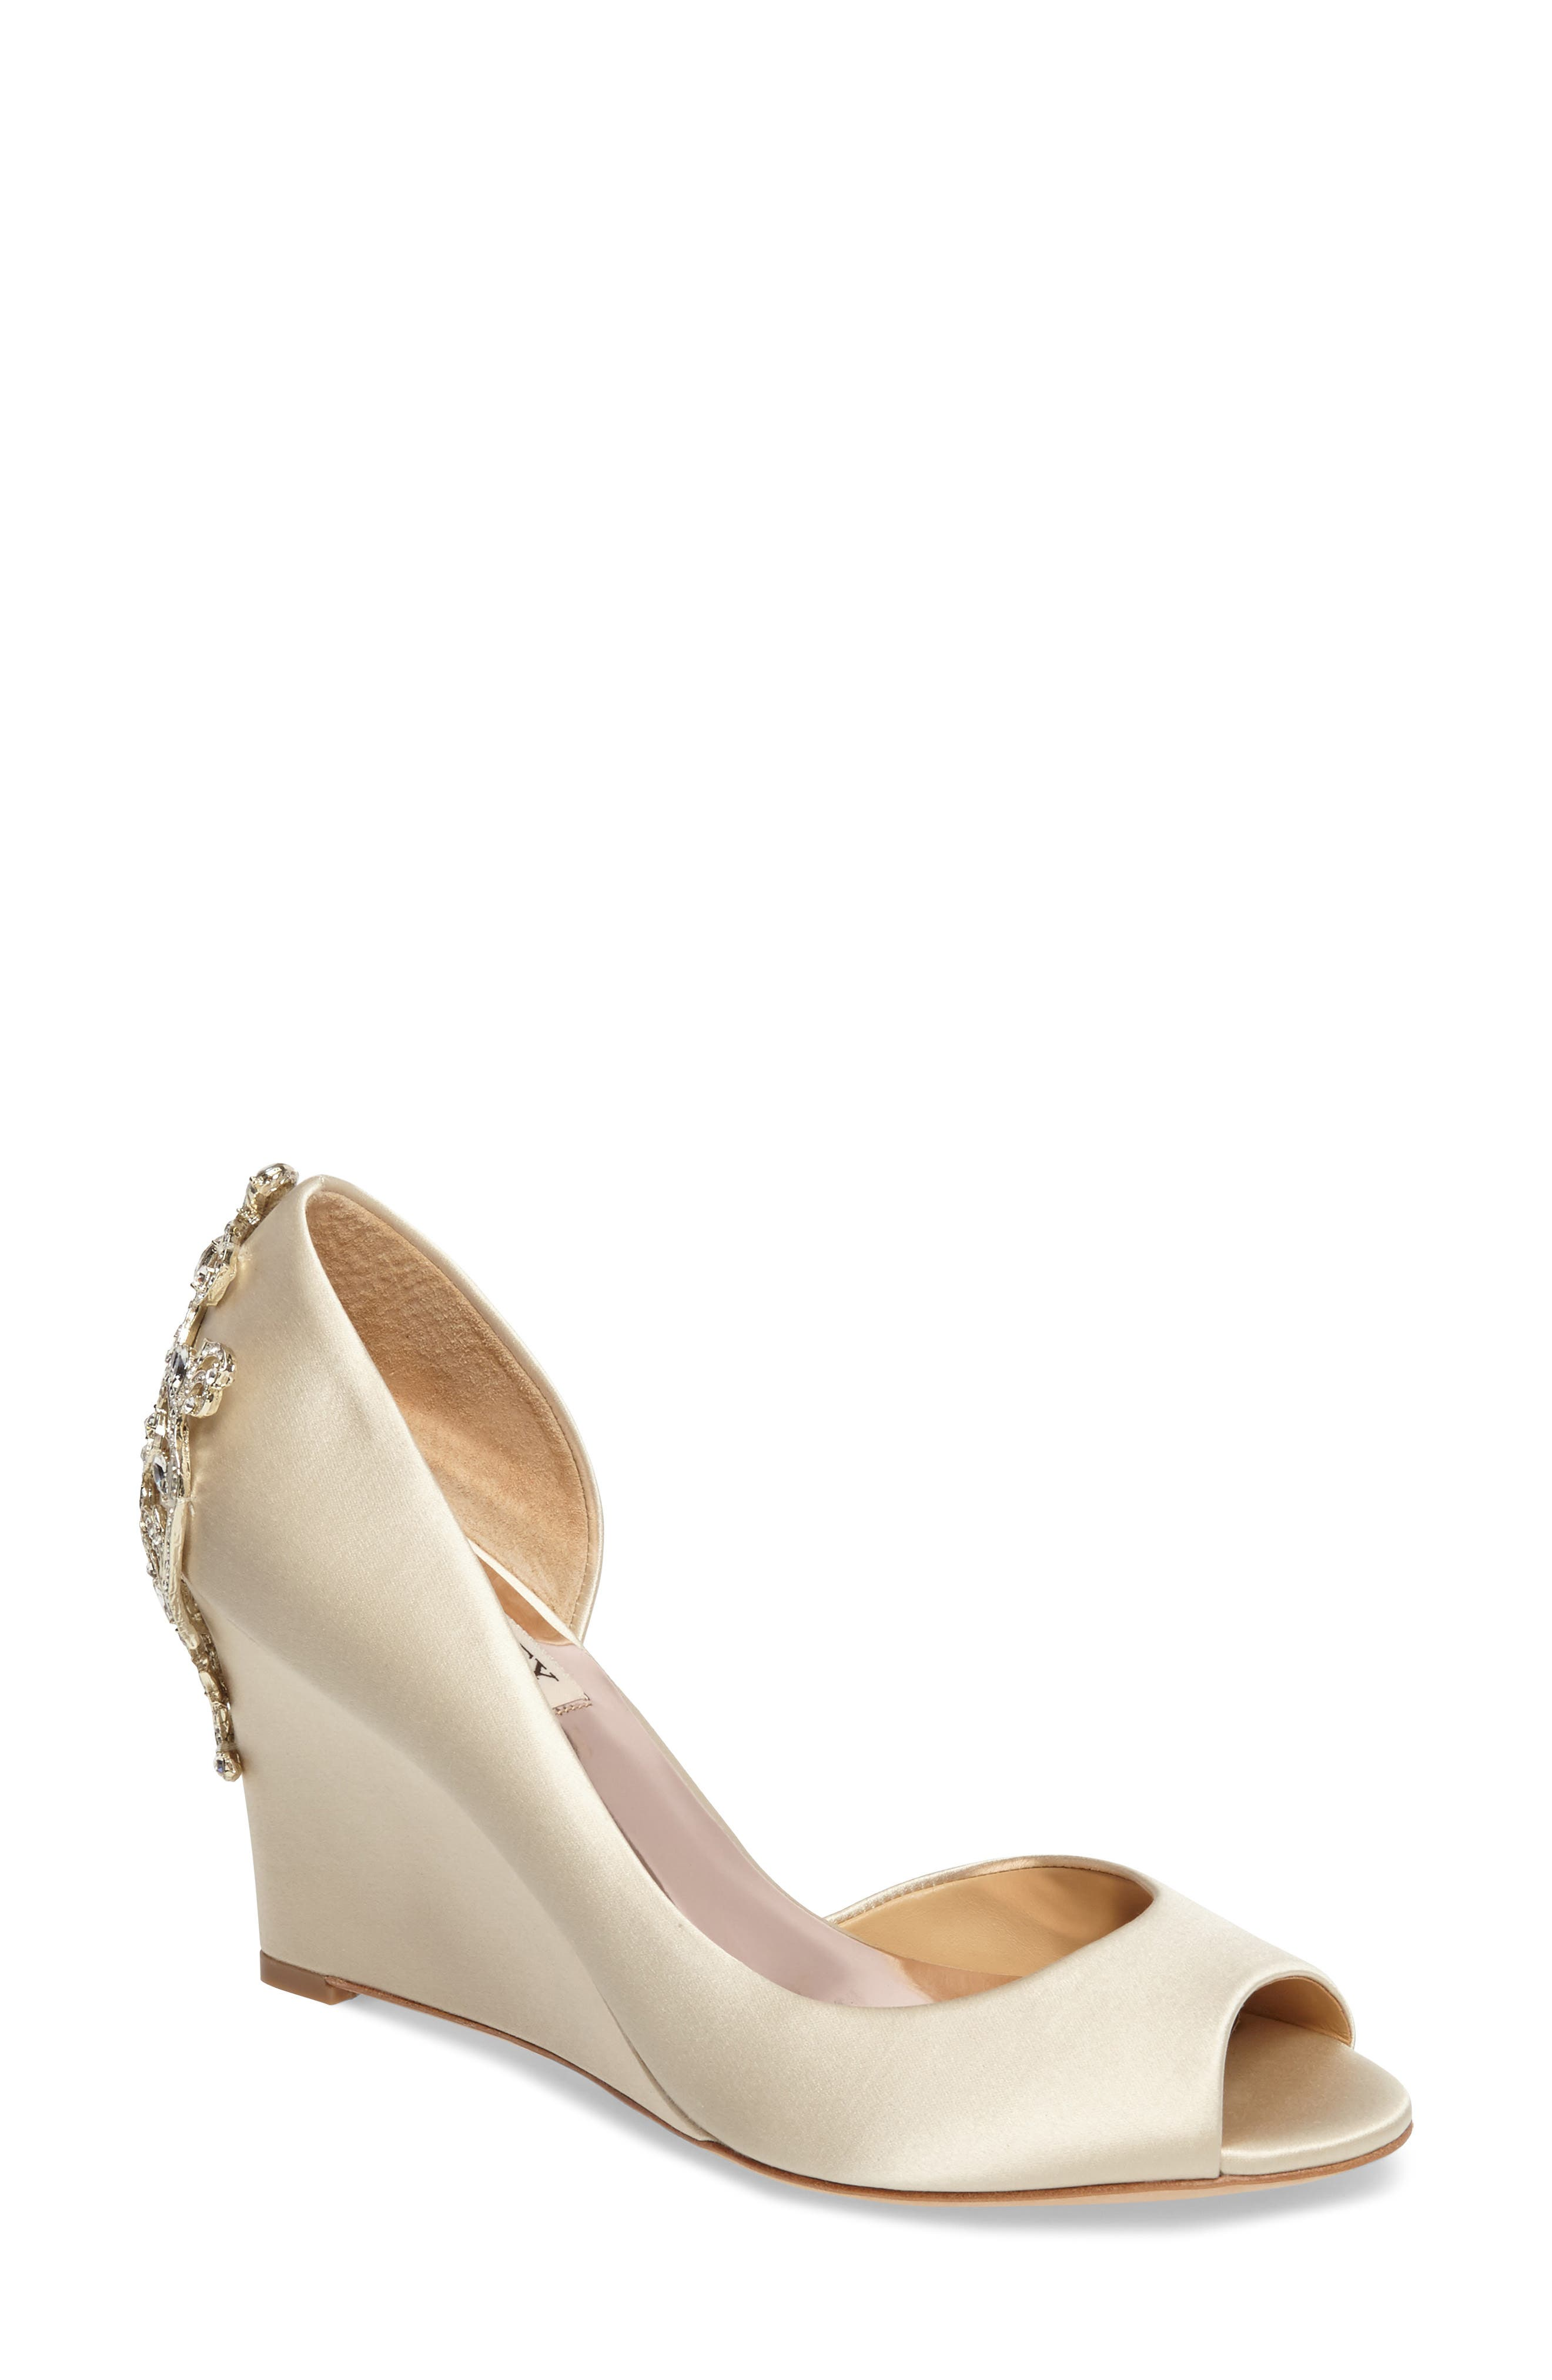 Meagan Embellished Peep Toe Wedge,                             Main thumbnail 1, color,                             IVORY SATIN